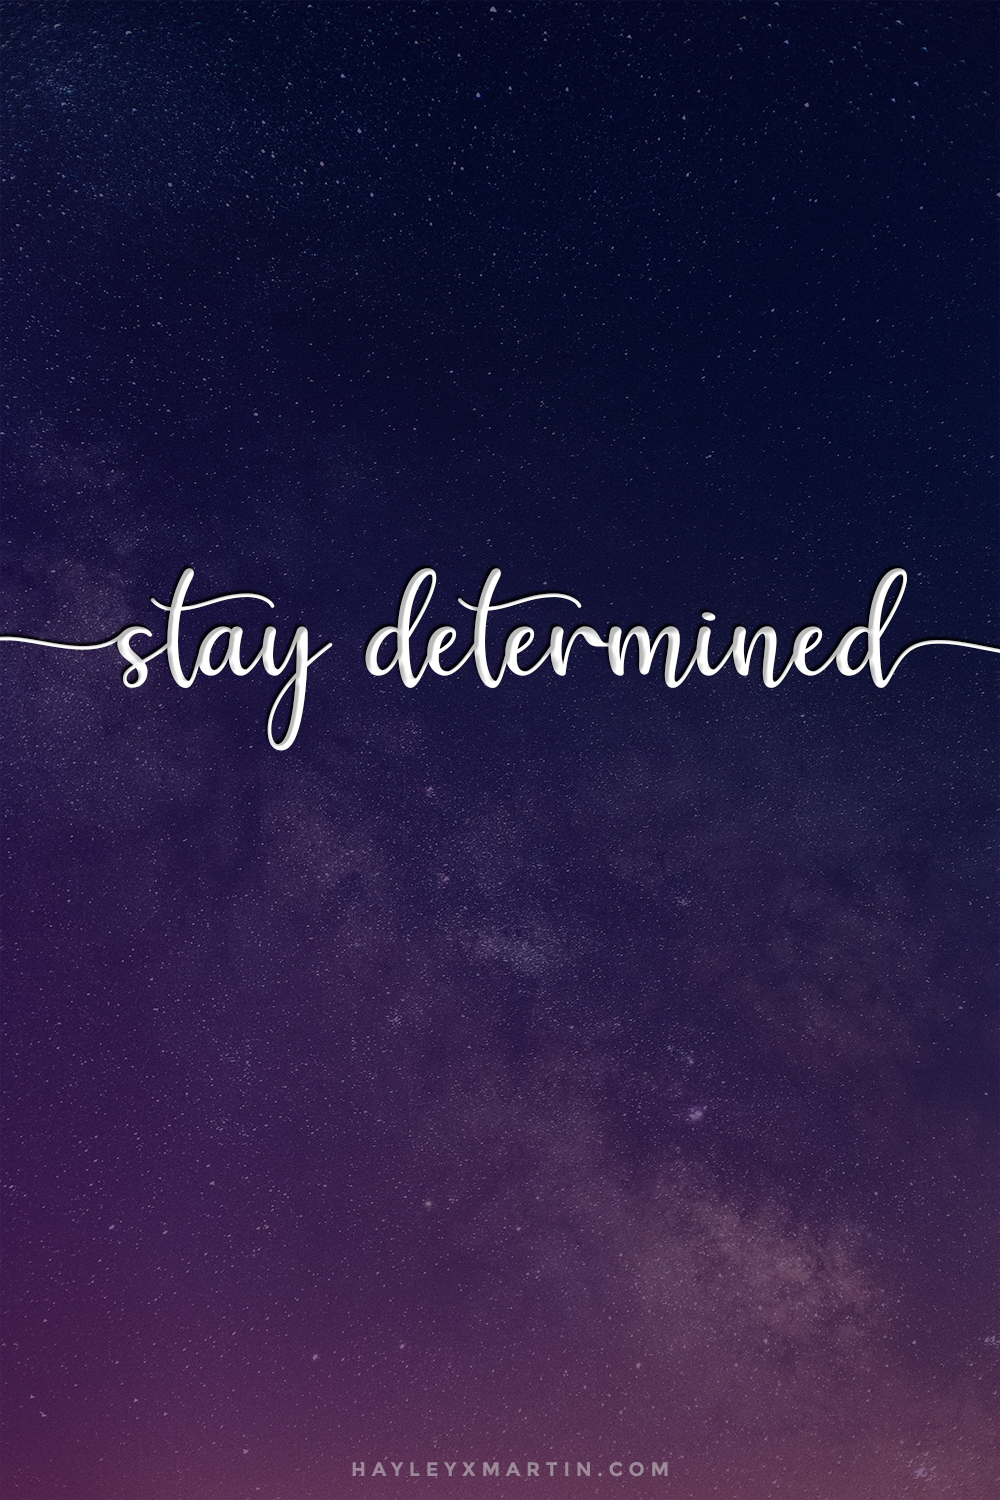 STAY DETERMINED | INSPIRATIONAL QUOTE | HAYLEYXMARTIN.COM